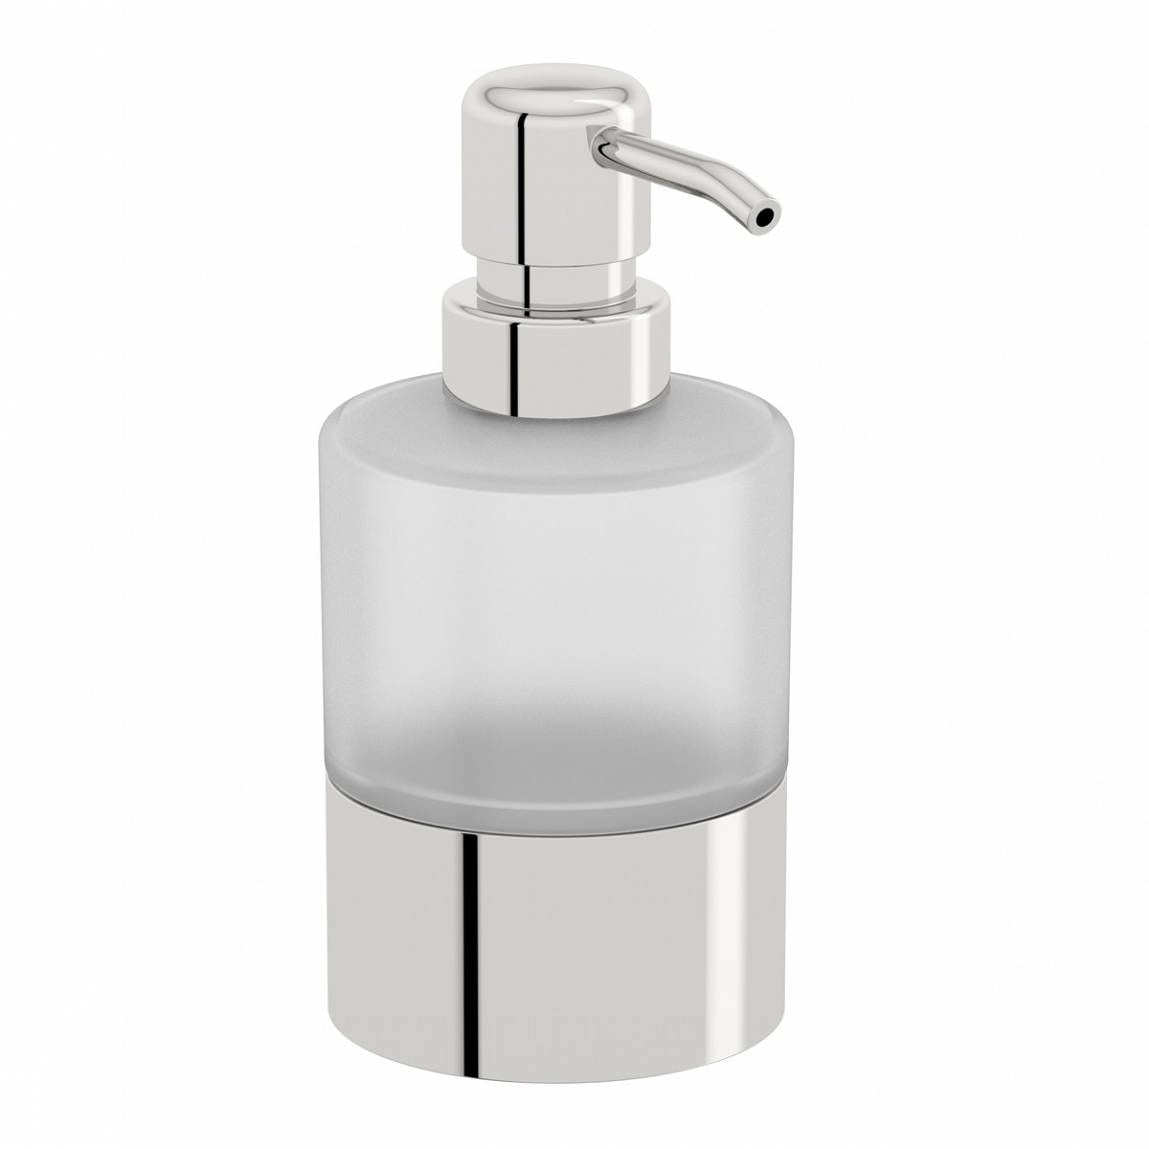 Orchard Options freestanding frosted glass soap dispenser